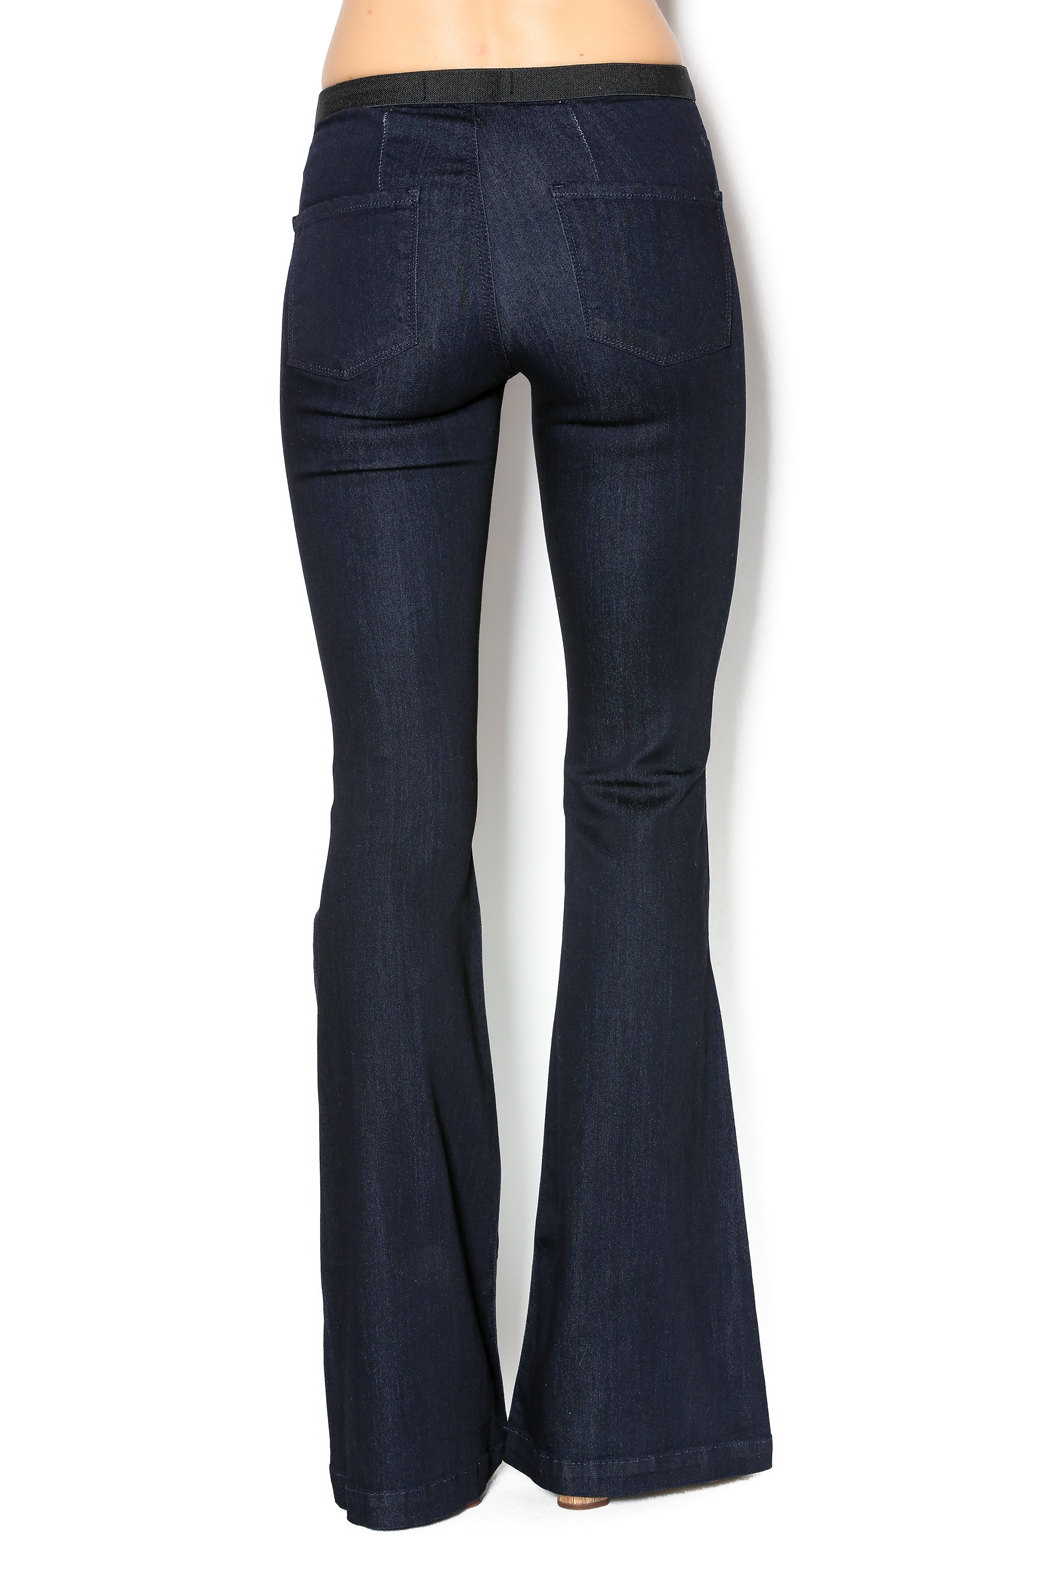 just black Pull On Flare Jeans from New Orleans by Candy Apple ...